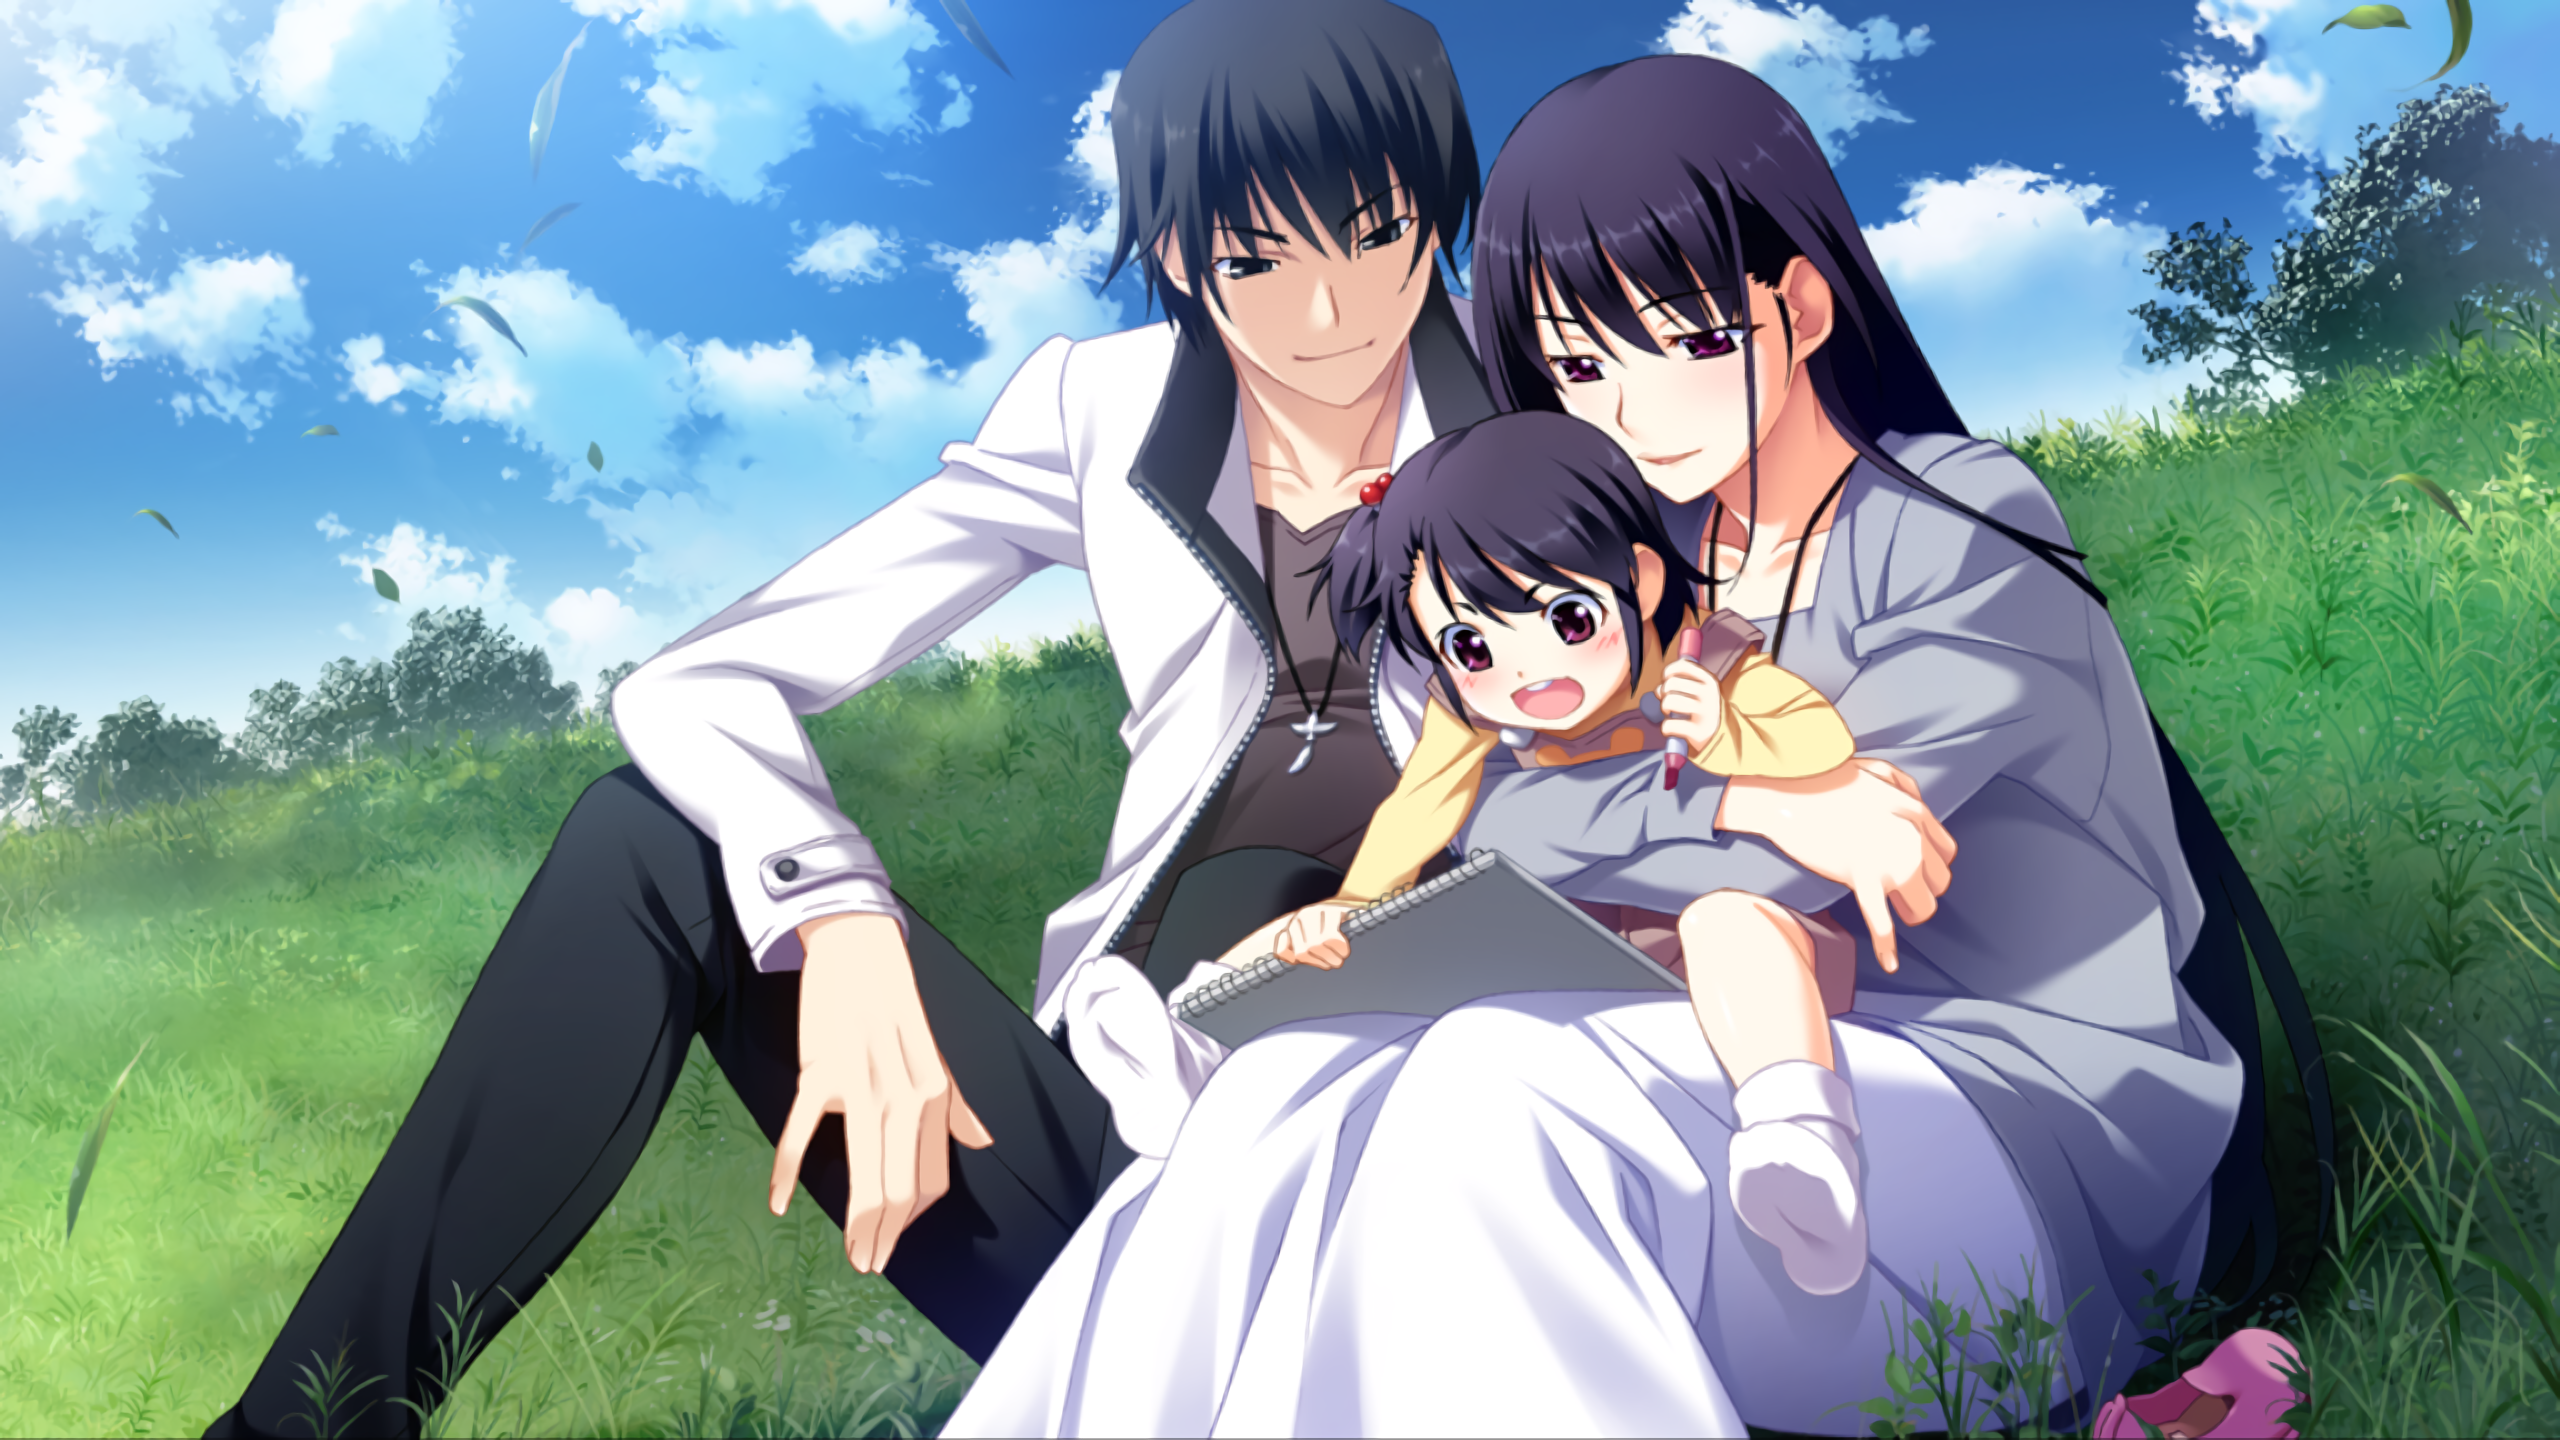 Amazing Grisaia (Series) Pictures & Backgrounds